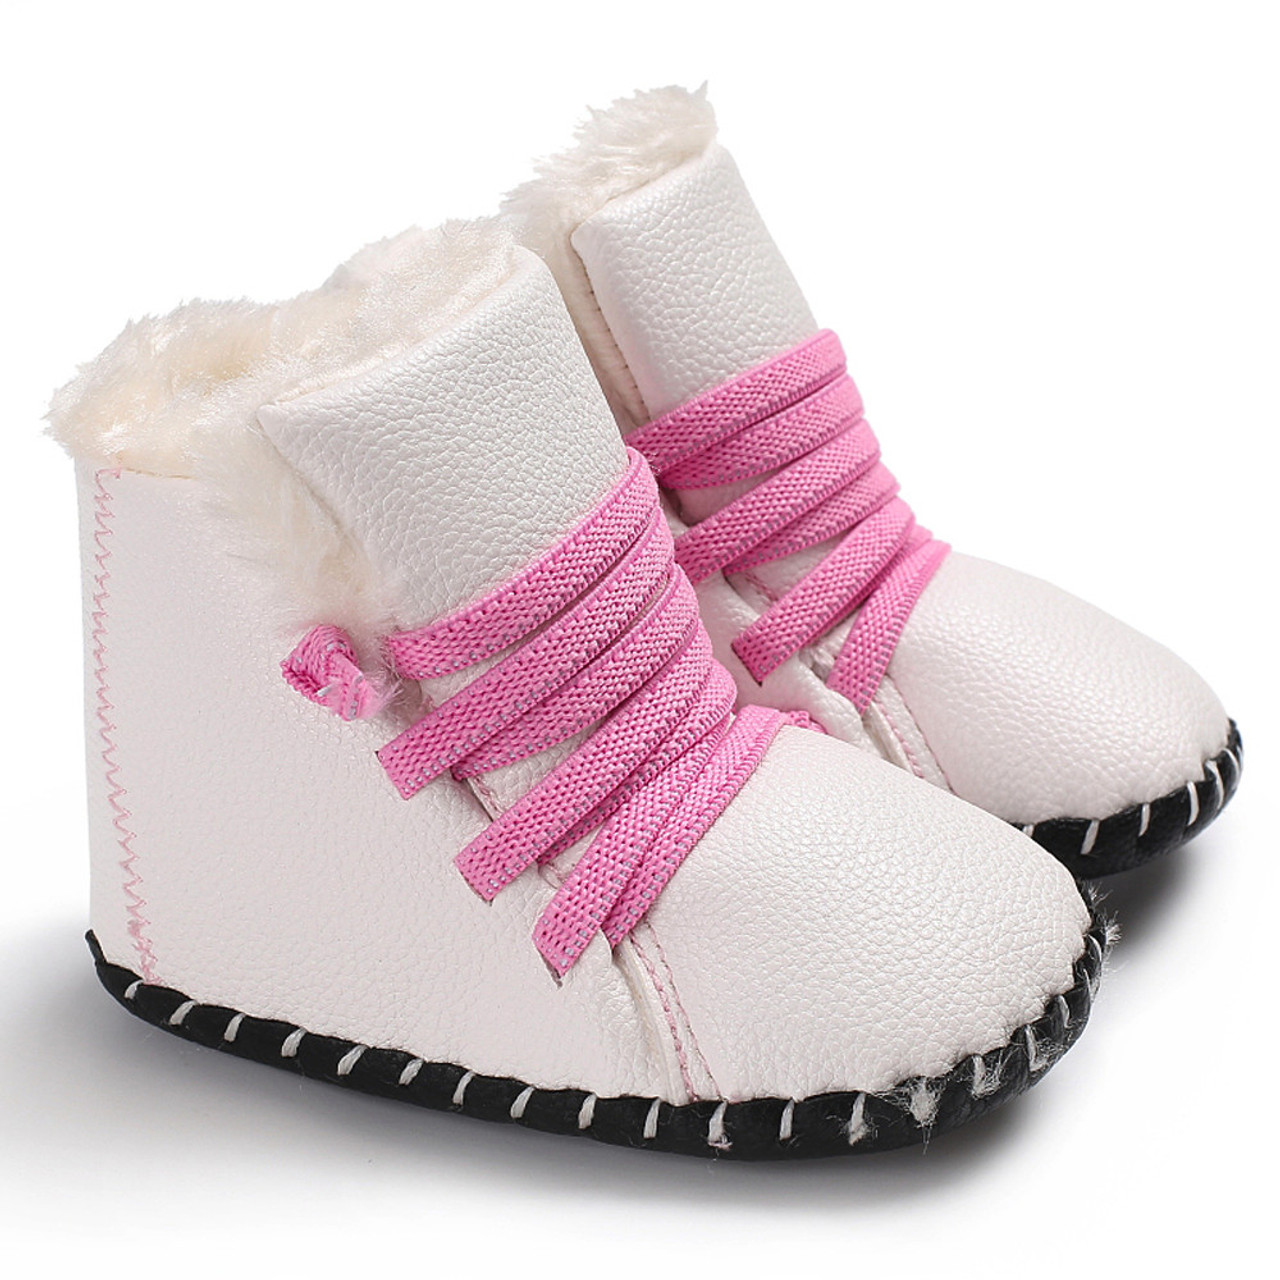 Arloneet Baby Shoes Girl Boy Soft Canvas Sneaker Soft Sole Crib Comfortable Waliking Shoes As The Gift To Baby Baby Shoes